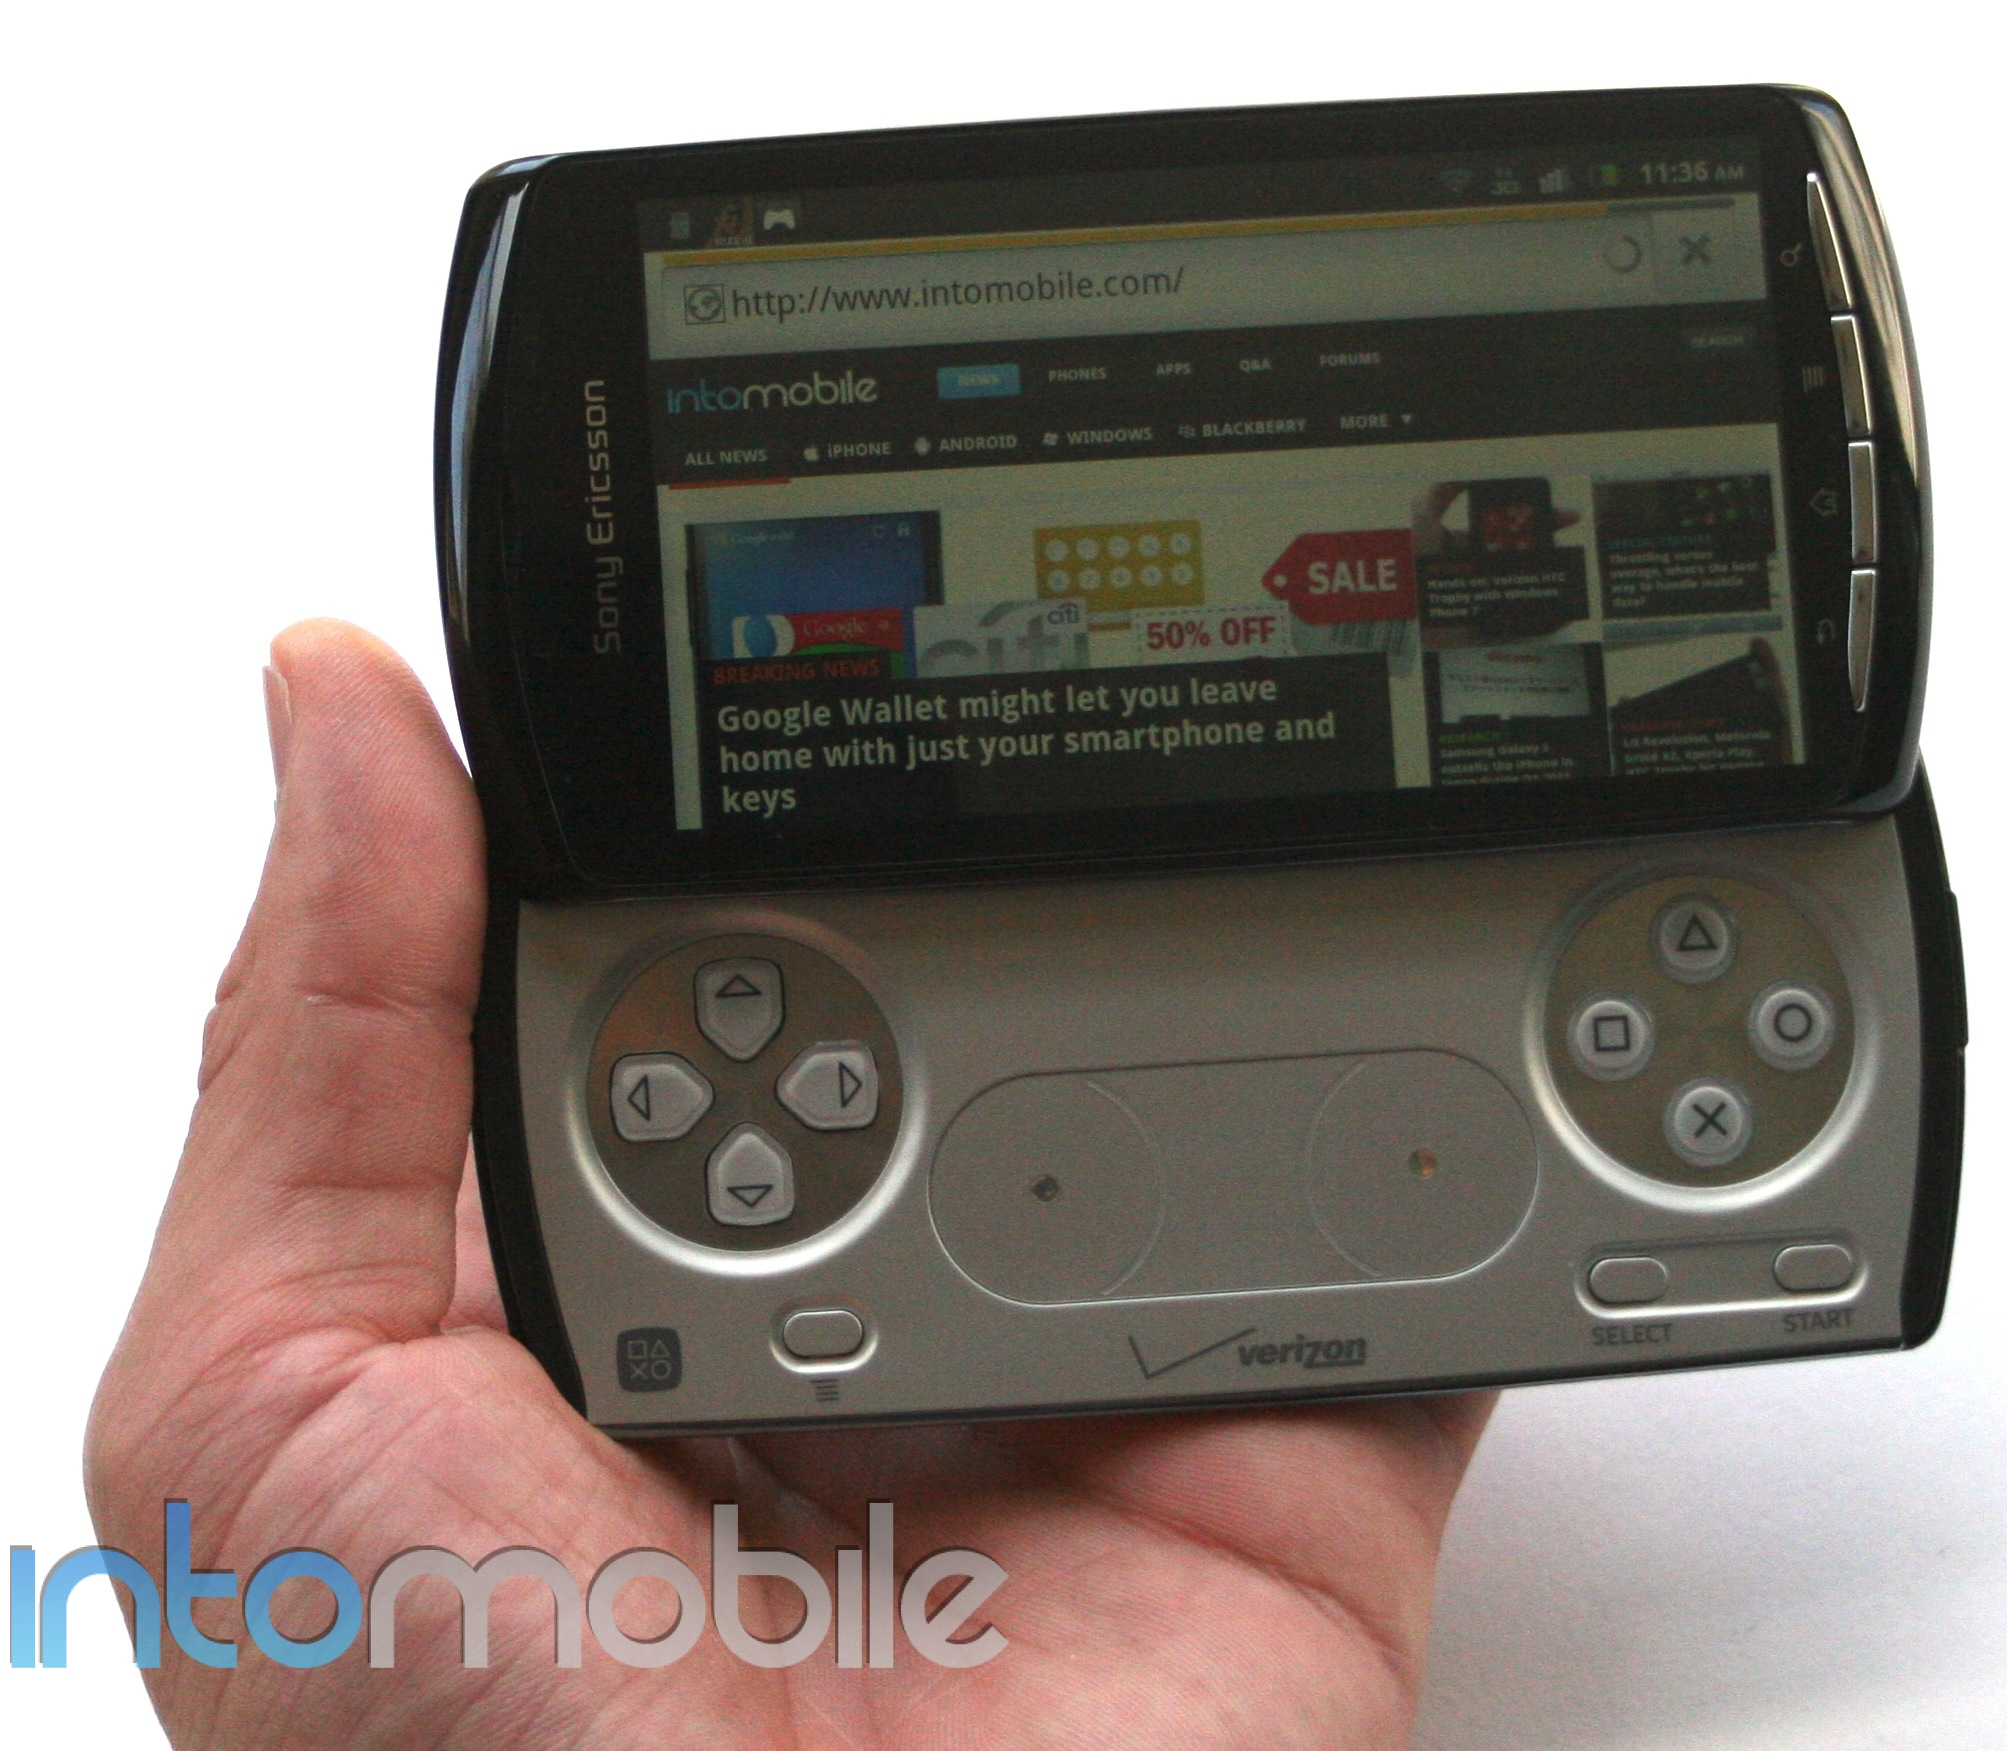 Playstation Contact Review Verizon Xperia Play The Playstation Phone